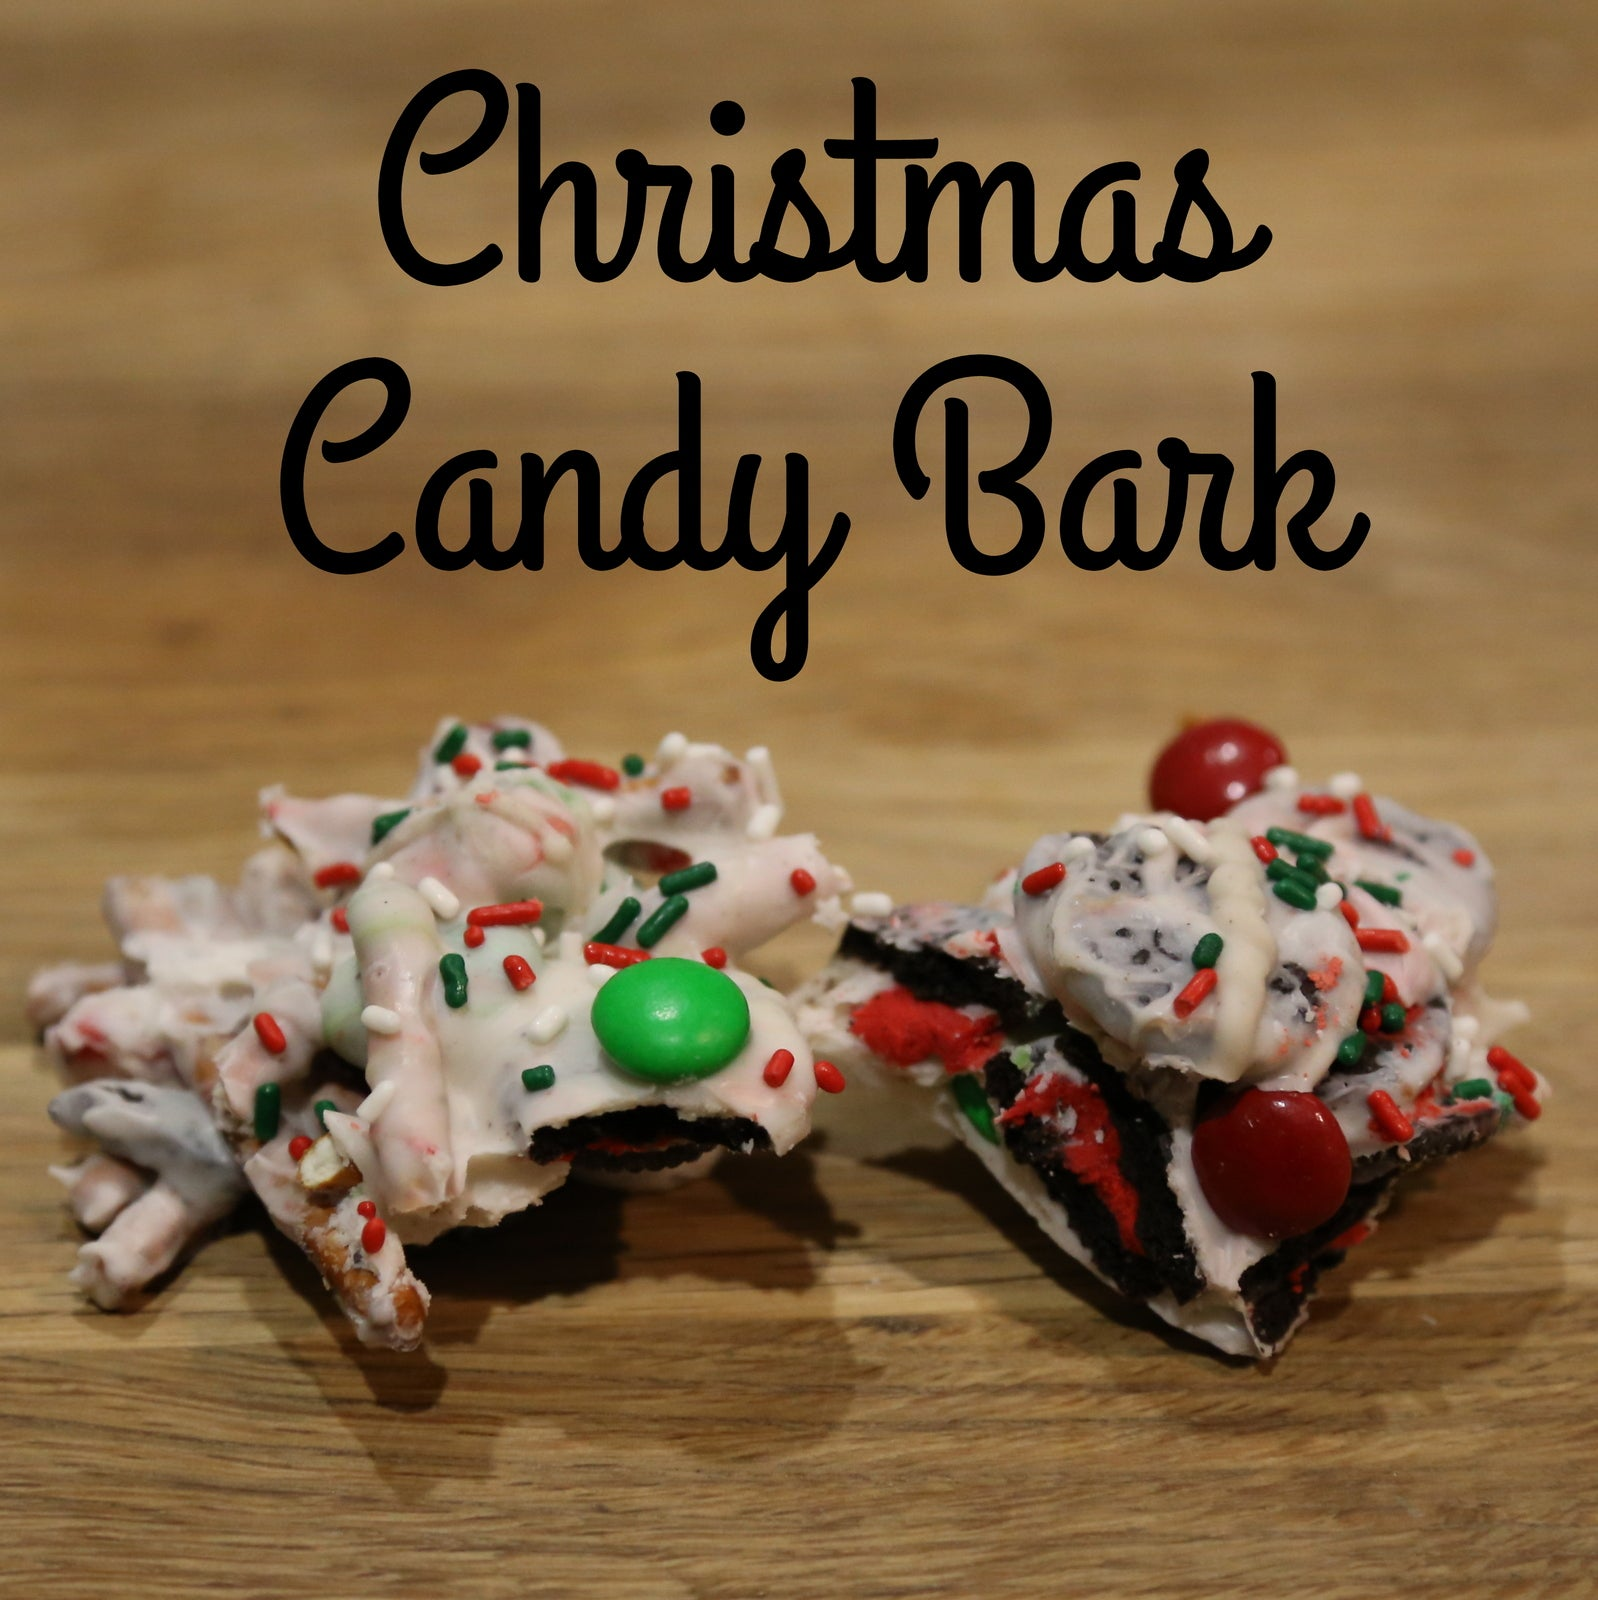 Christmas Candy Bark from Smocked Auctions Aunt Ana #12DaysOfChristmasCookies